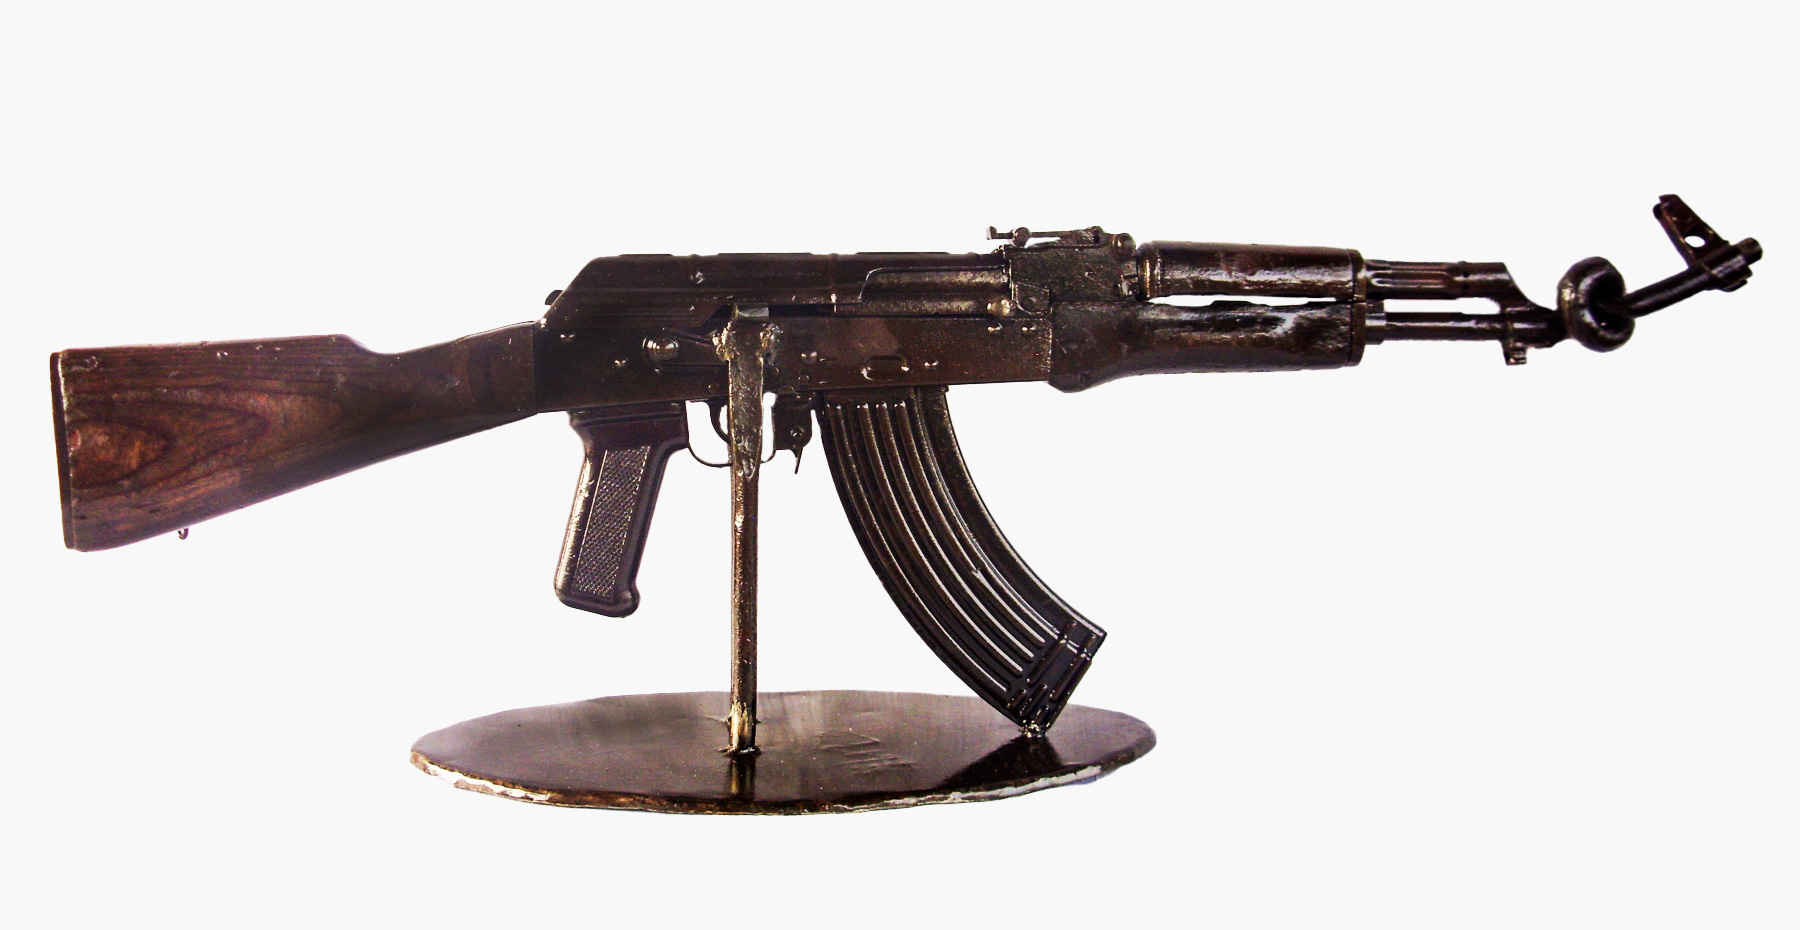 AK-47 Knotted by Manfred Zbrzezny - Arms Into Art – Liberia